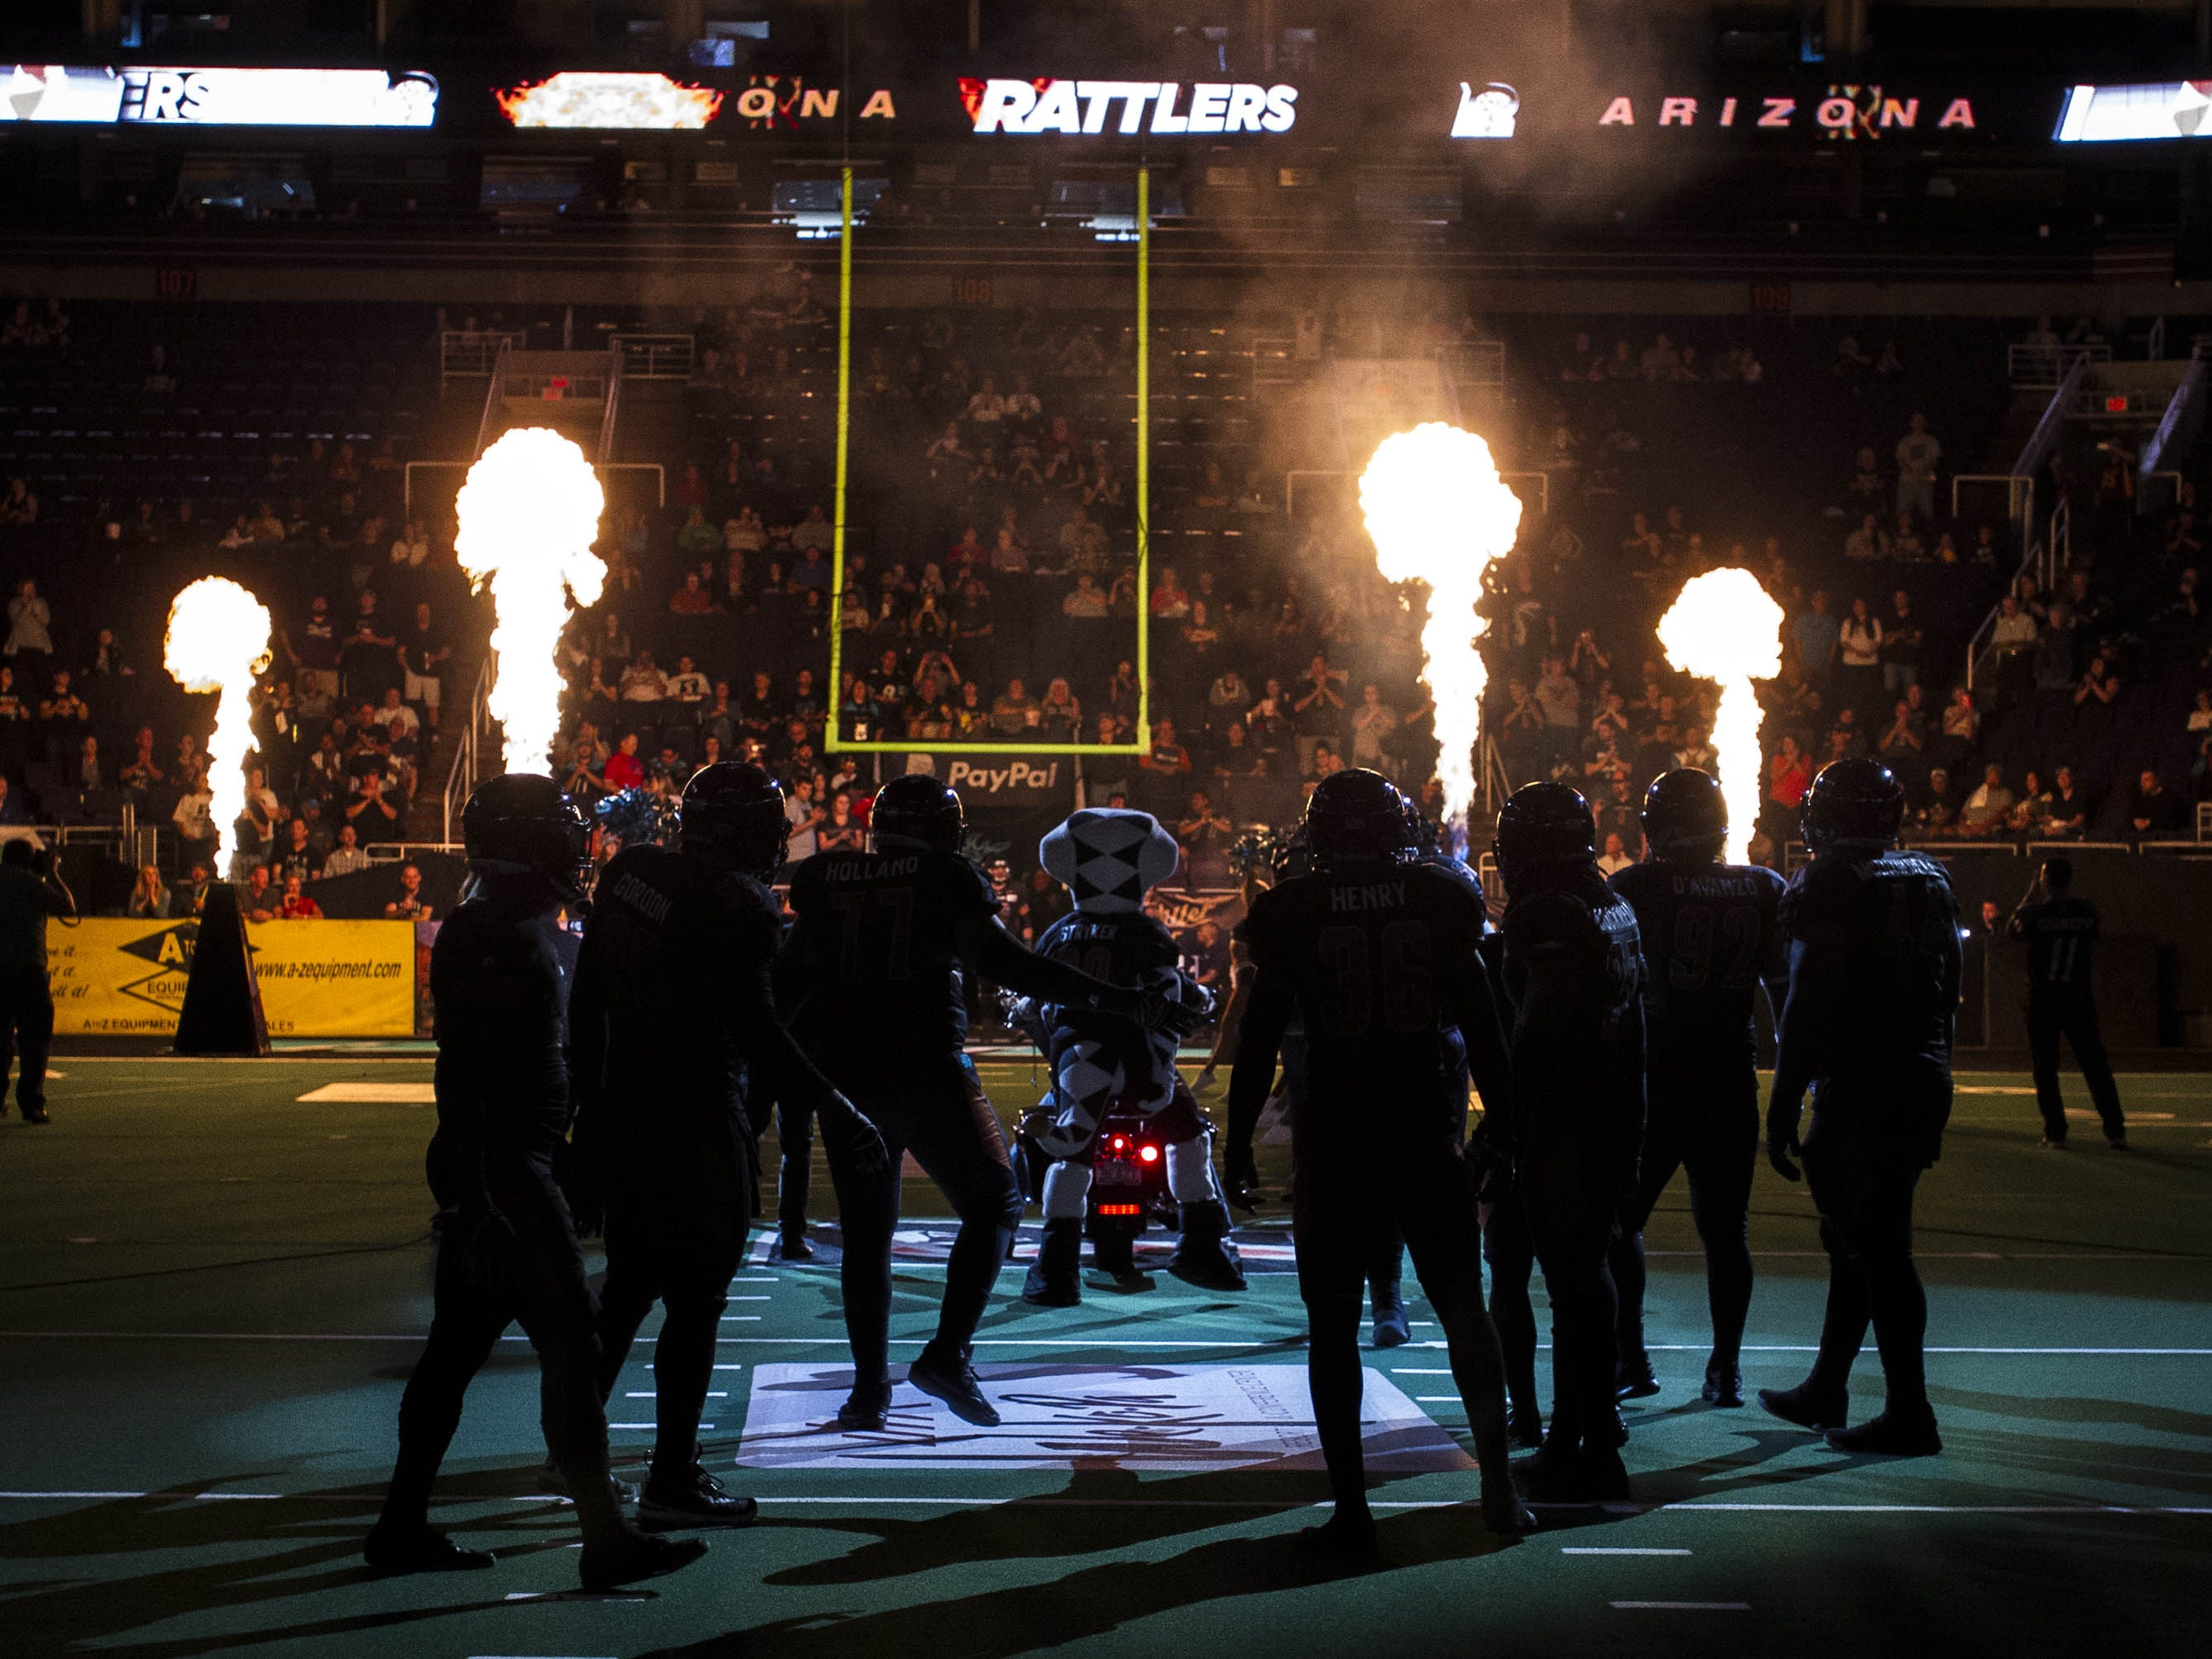 Arizona Rattlers players are introduced before their game against the Cedar Rapids River Kings at Talking Stick Resort Arena in Phoenix, Sunday, March 3, 2019.